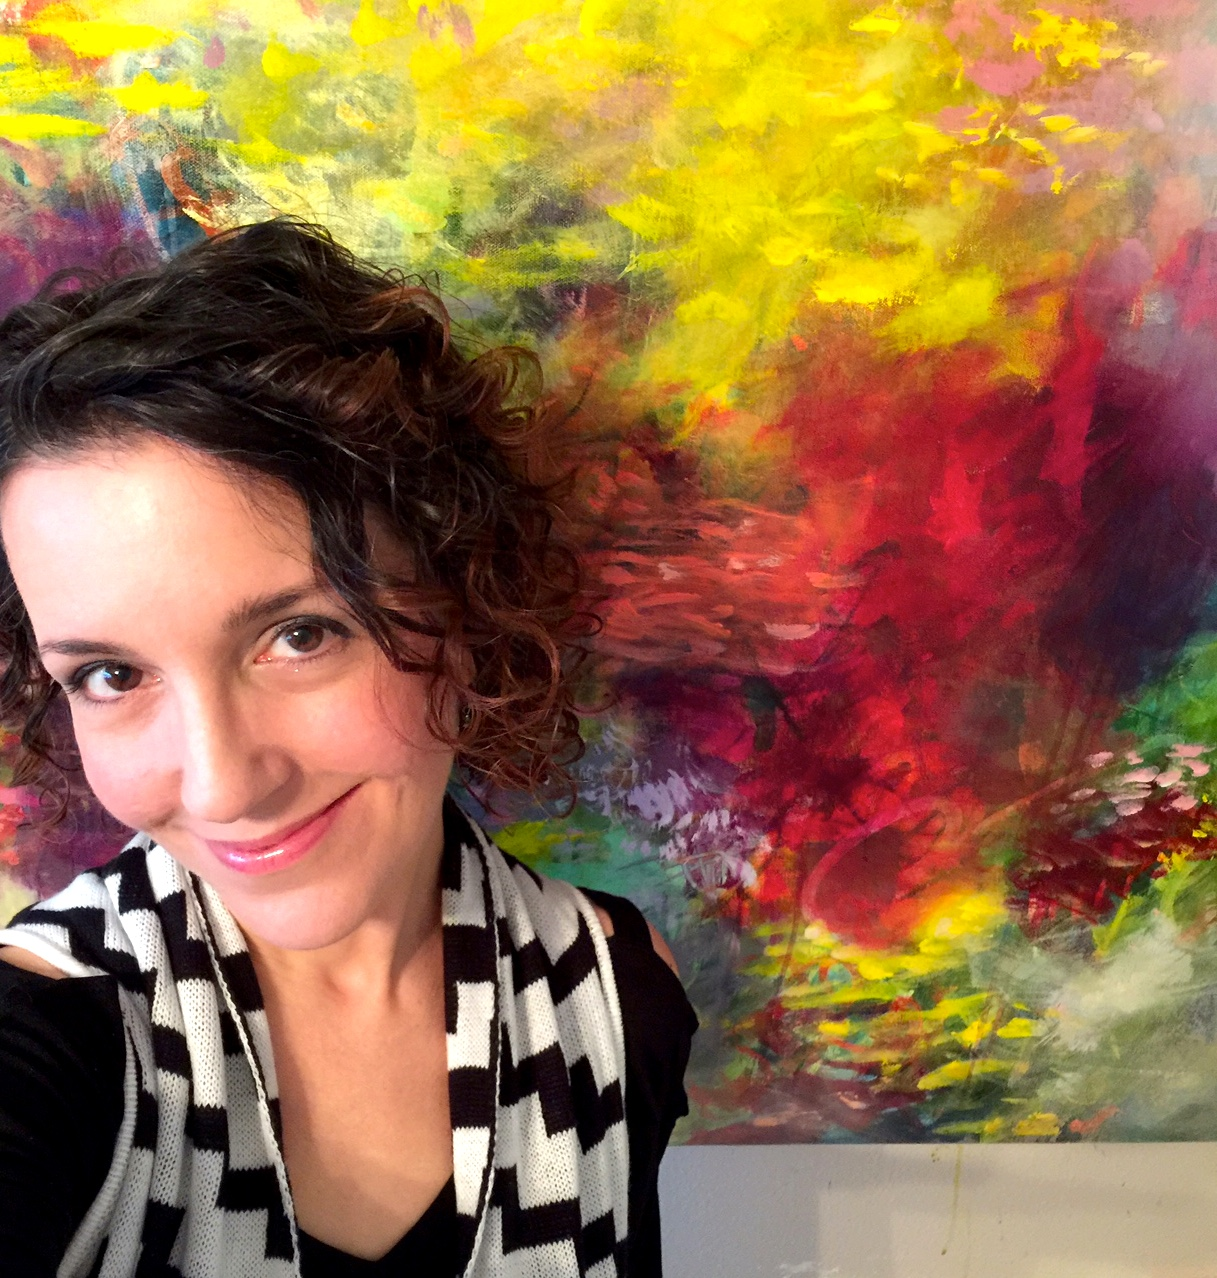 Paulette Insall, abstract painter working in her art studio in Portland, OR where she creates large abstract paintings inspired by nature (especially flowers) for home and corporate decor. Perfect for any decor style, whether it be modern contemporary or romantic traditional or transistional.